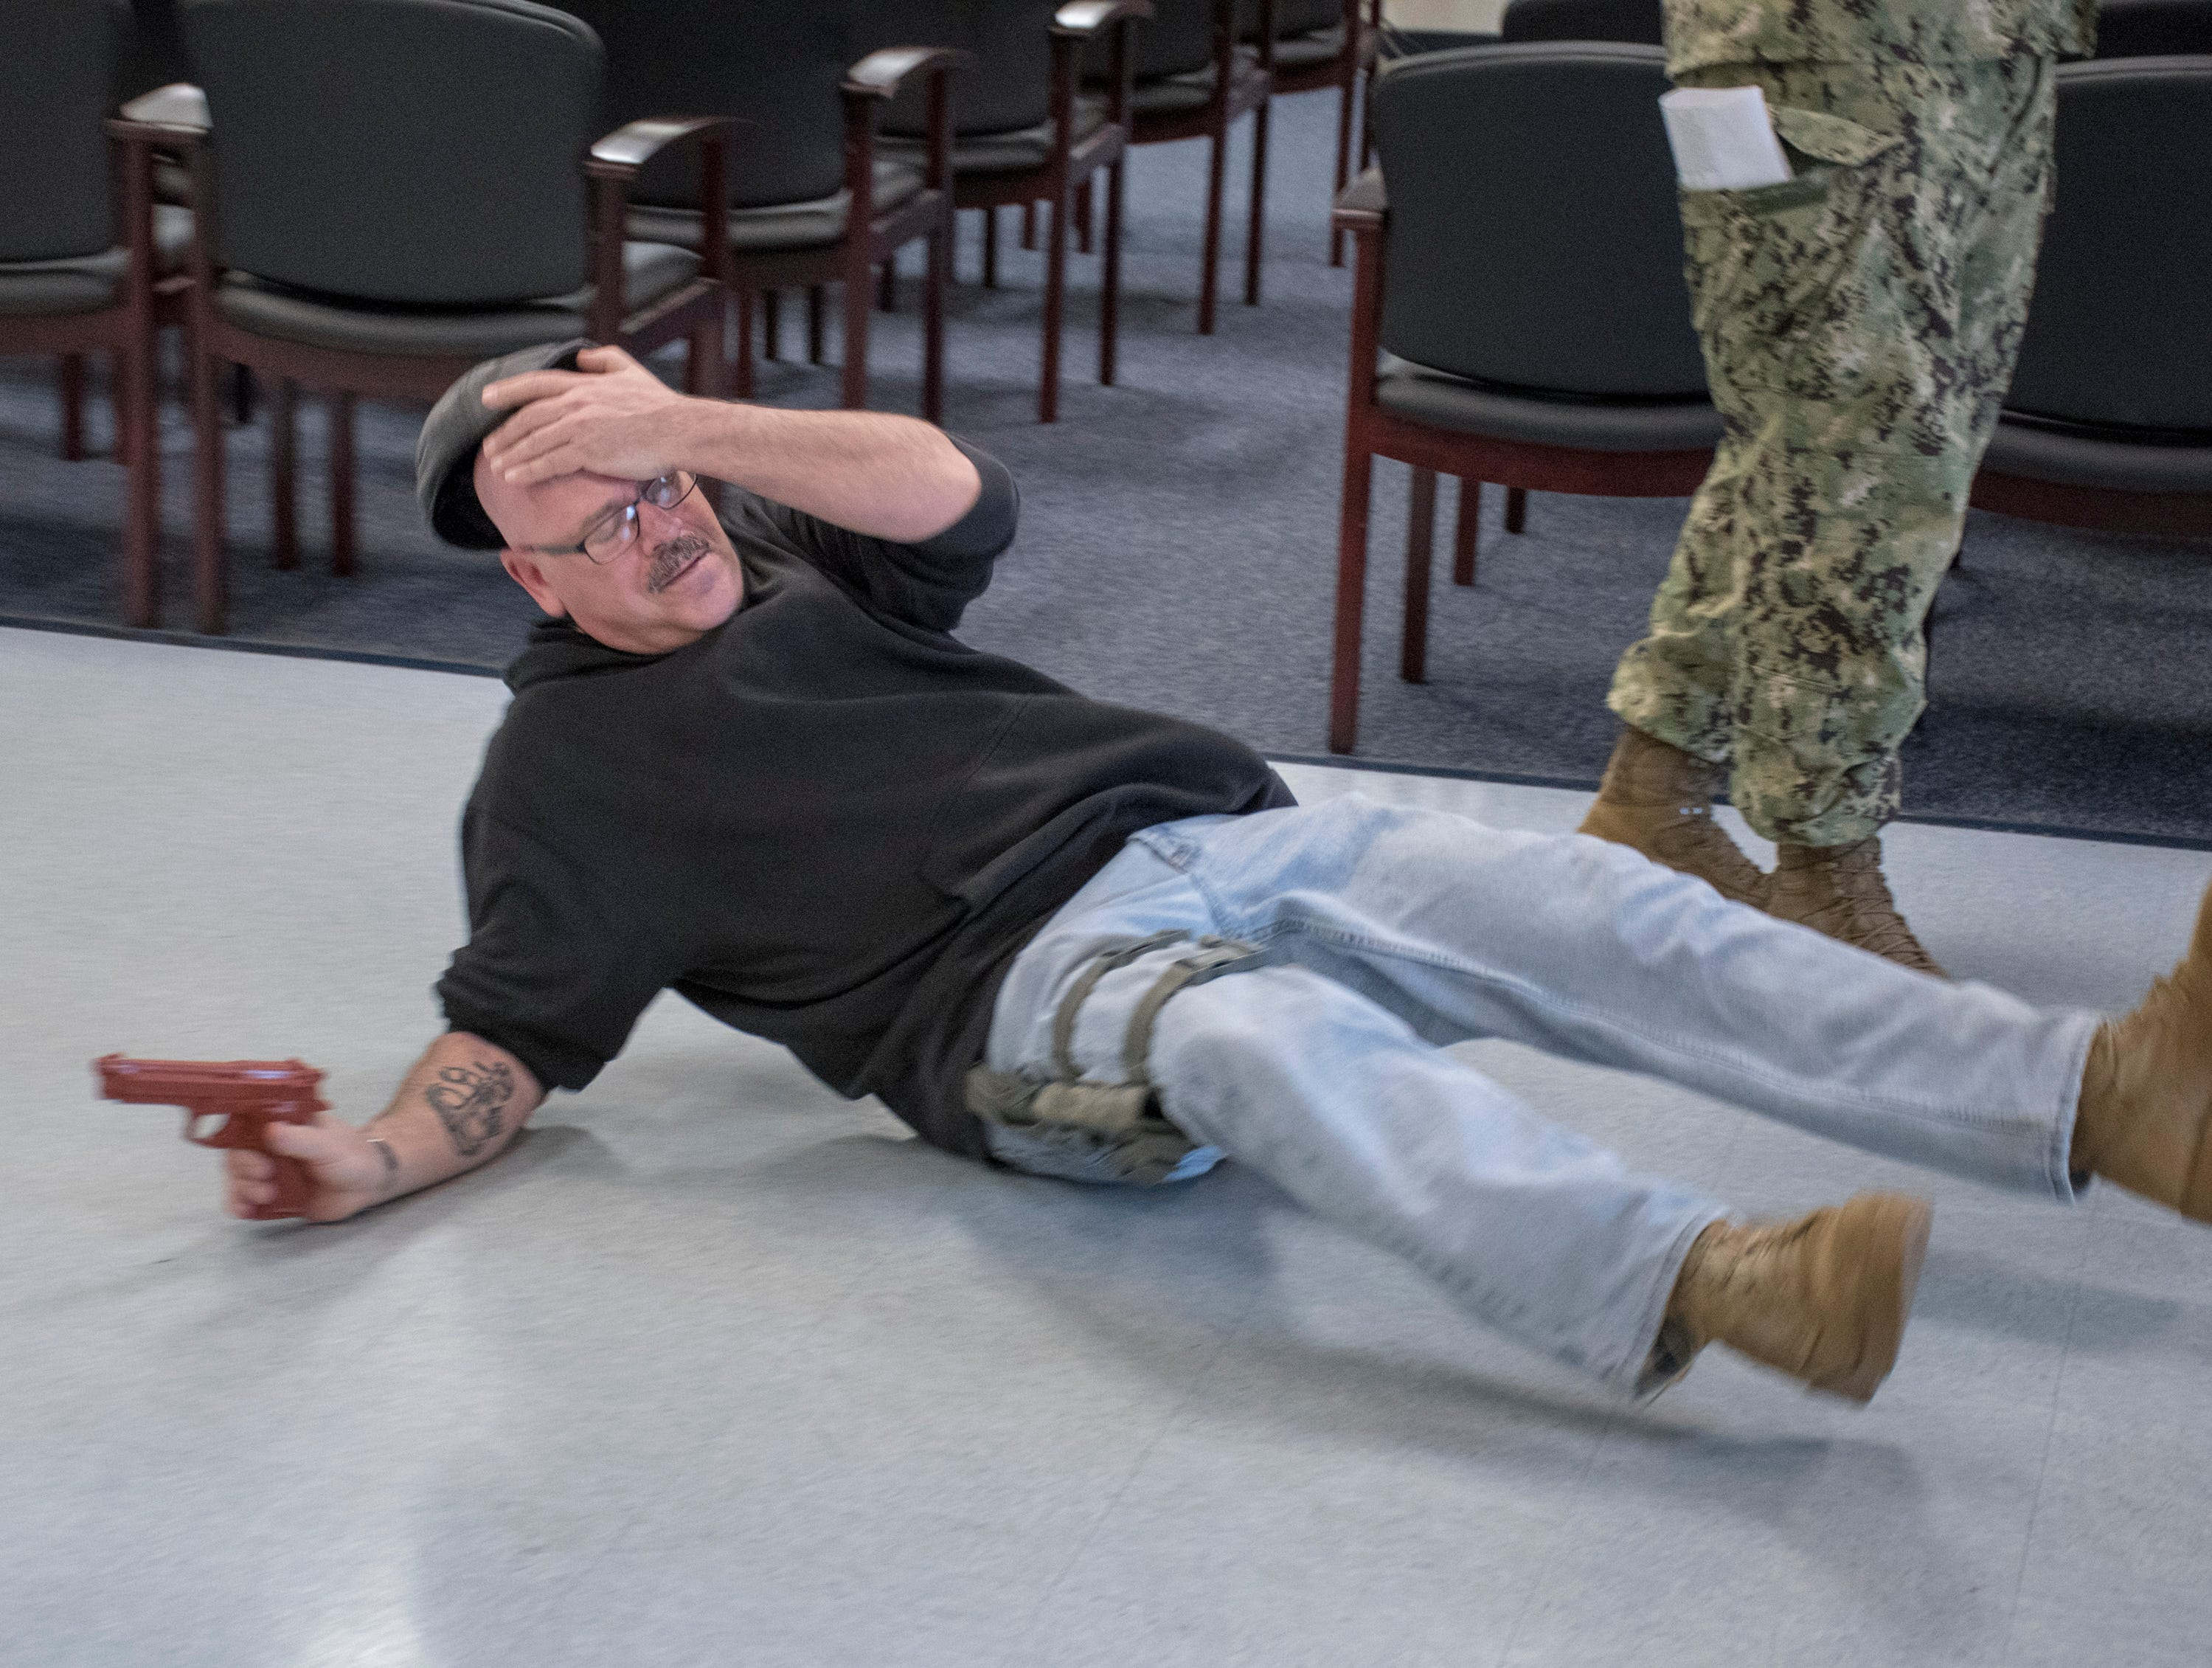 Portraying an armed intruder,  Senior Chief Aviation Structural Mechanic Pasquale Moreland falls to the ground after being shot in the Personnel Support Detachment building during Exercise Solid Curtain-Citadel Shield, an annual security exercise is conducted at NAS Pensacola on Tuesday, February 4, 2019.